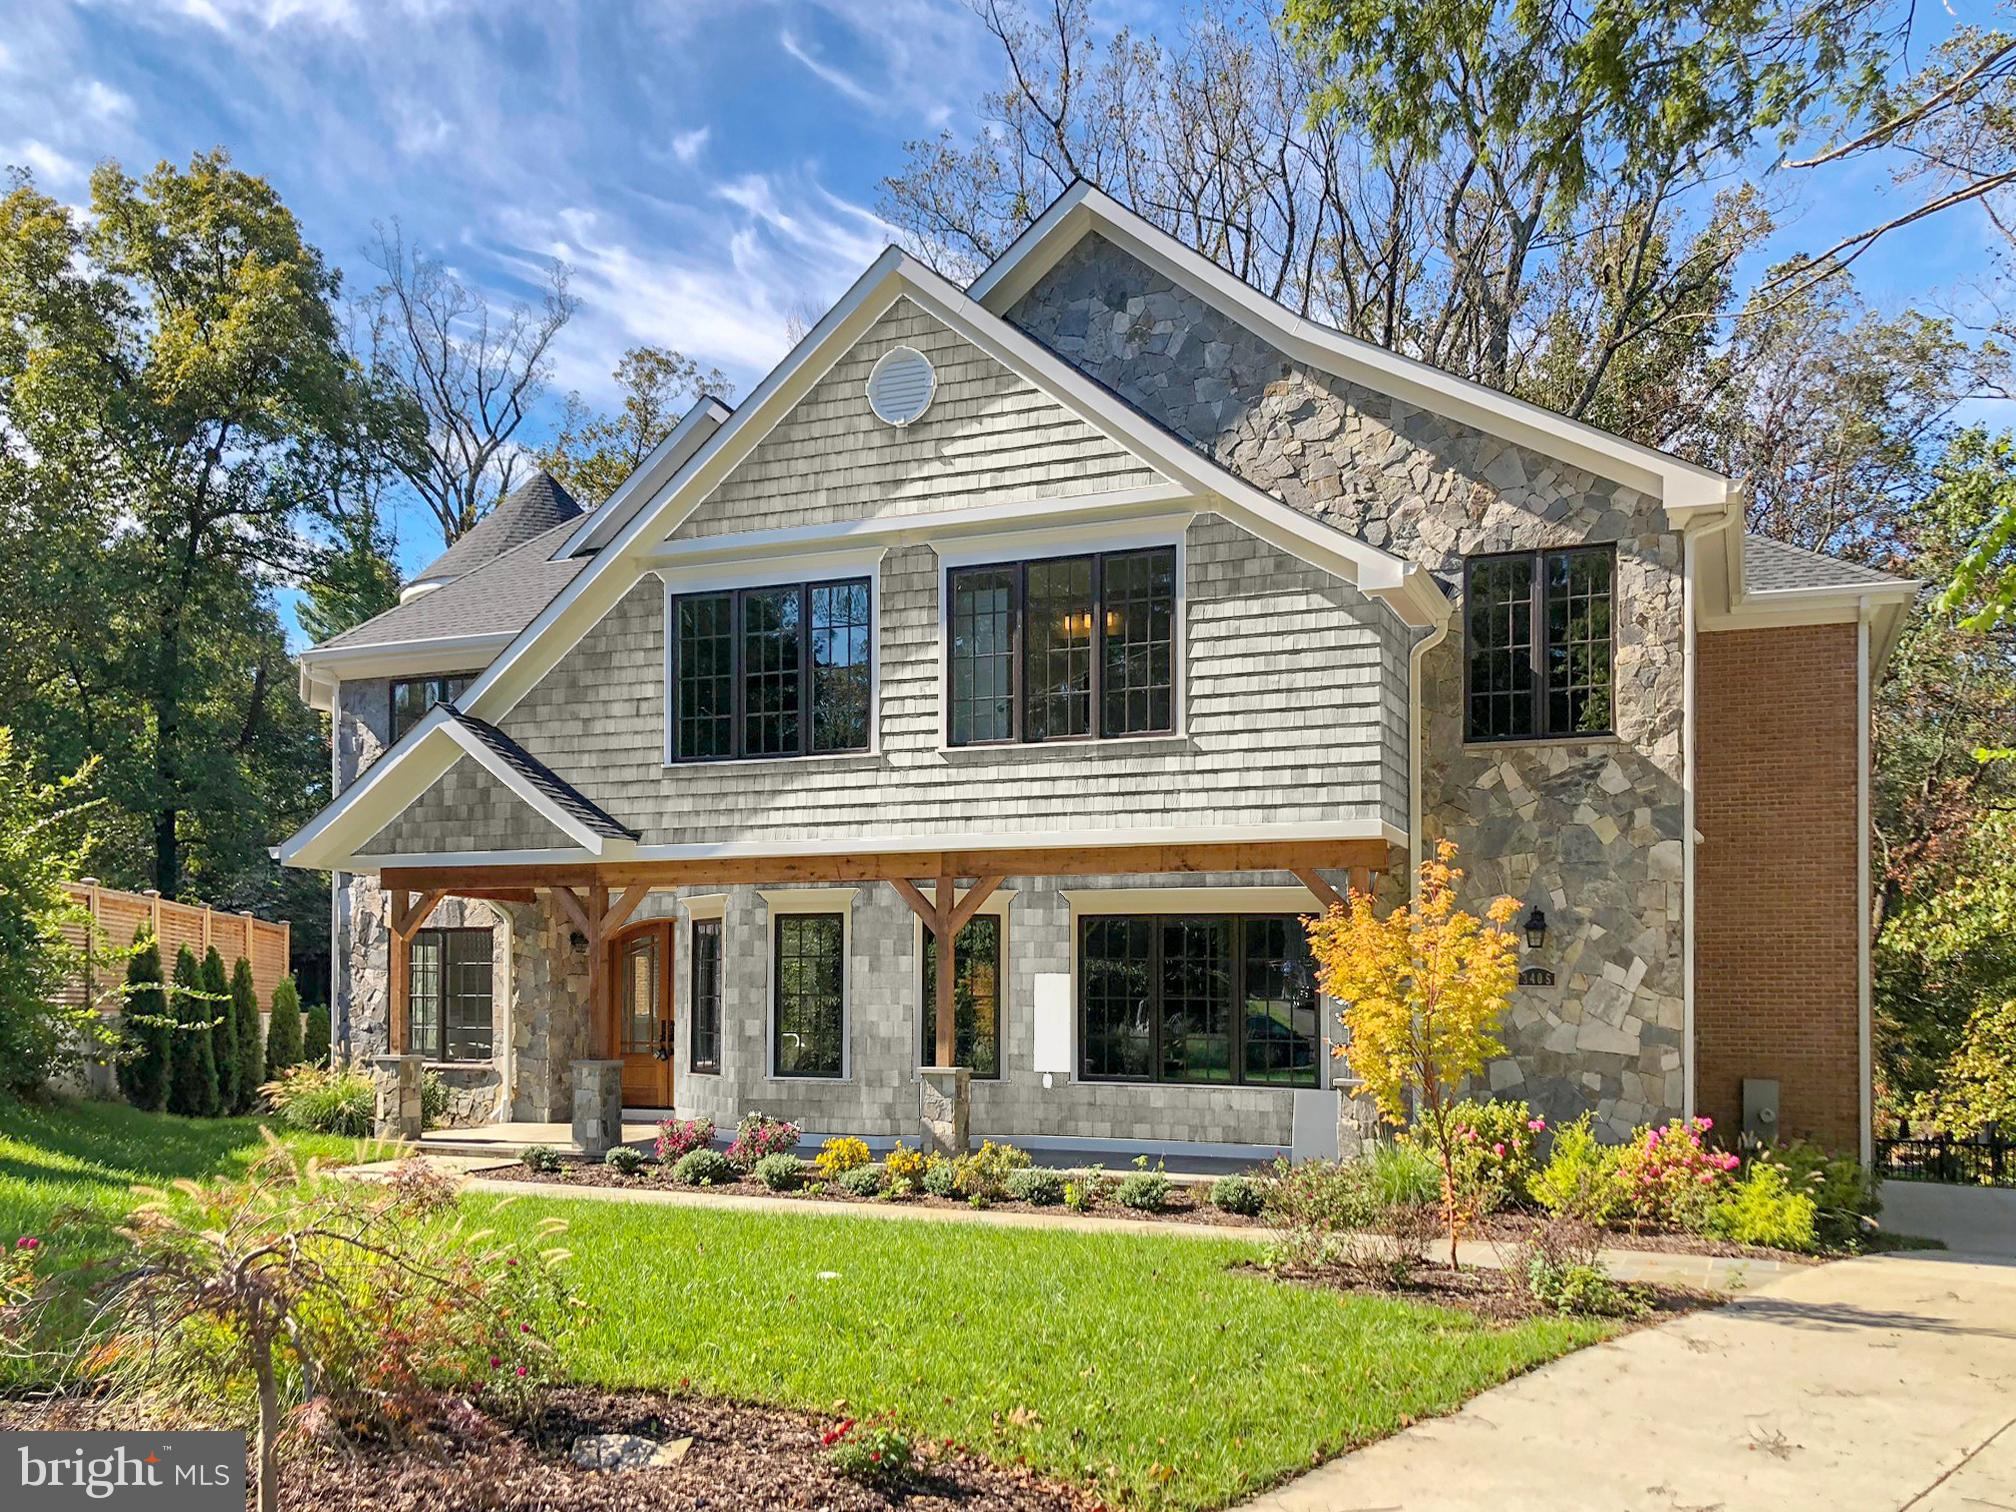 3405 ROLLING COURT, CHEVY CHASE, MD 20815